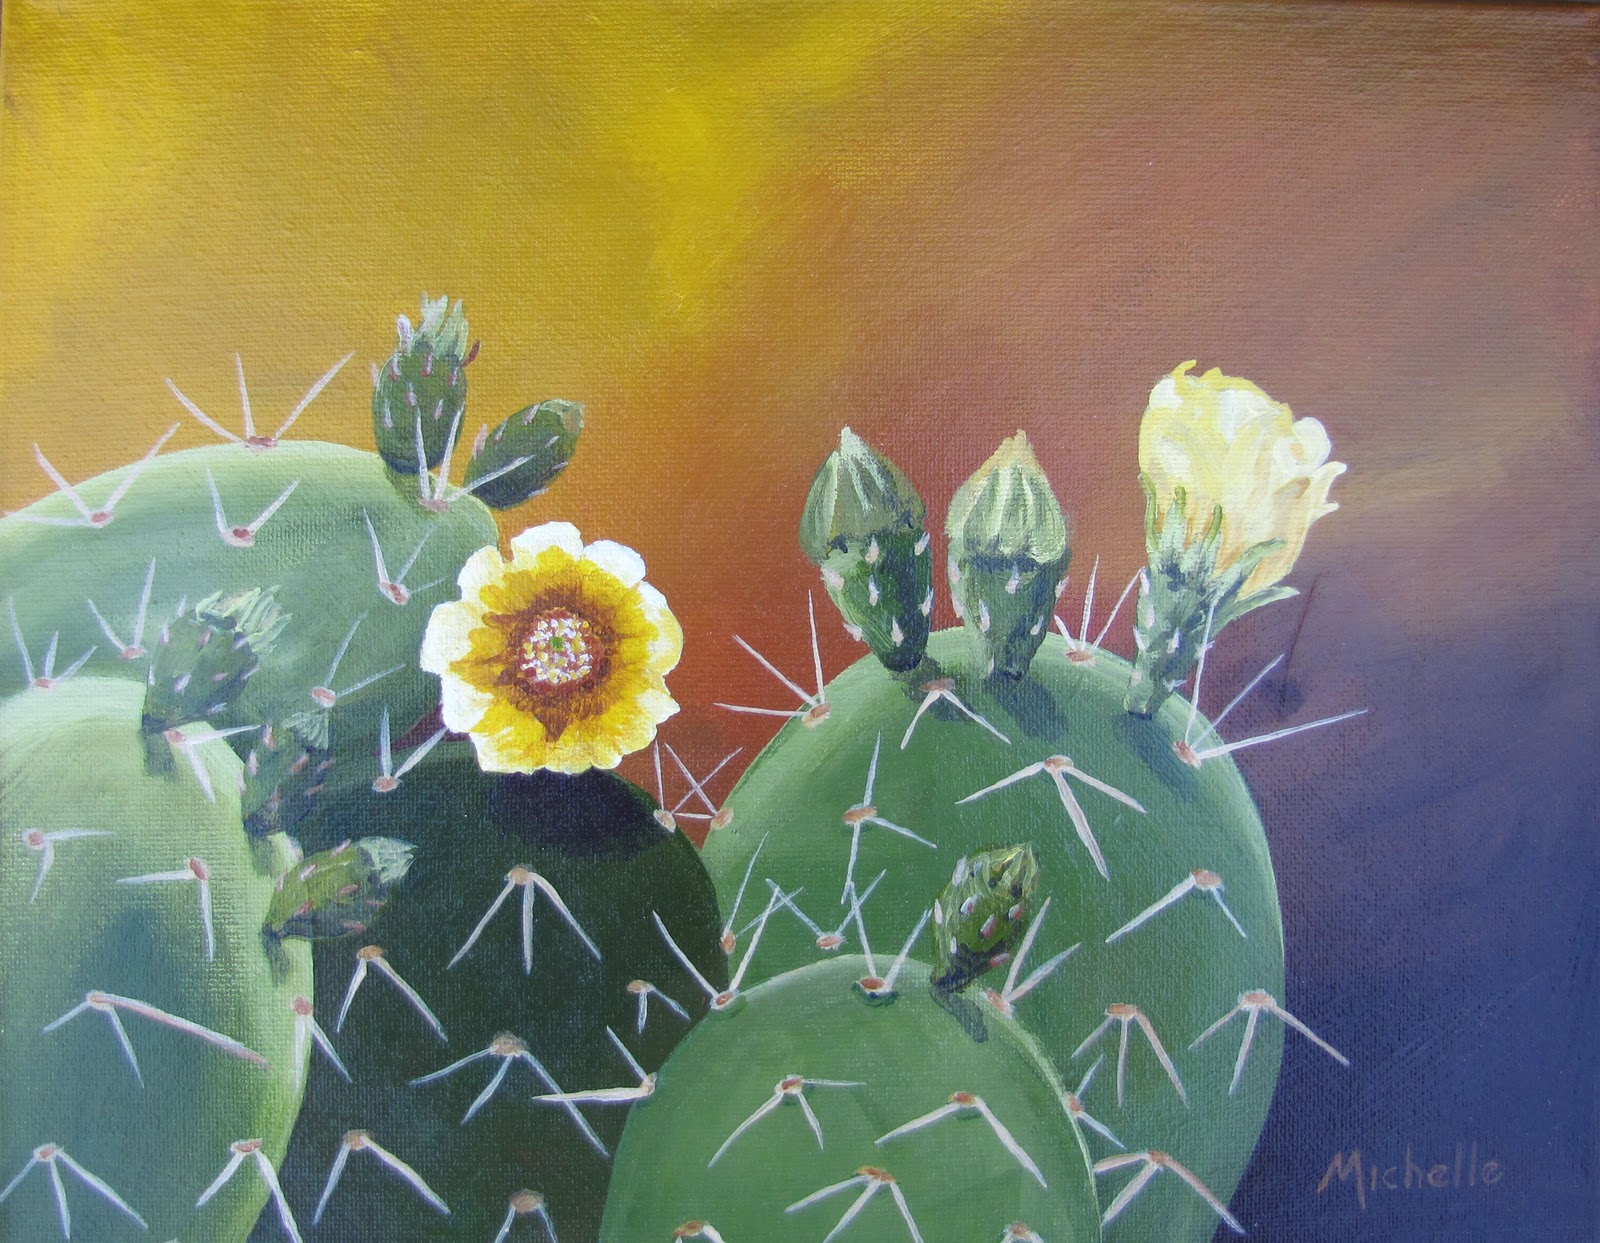 """Prickly Pear Cactus with Blossoms 1"" original fine art by Michelle Wolfe"